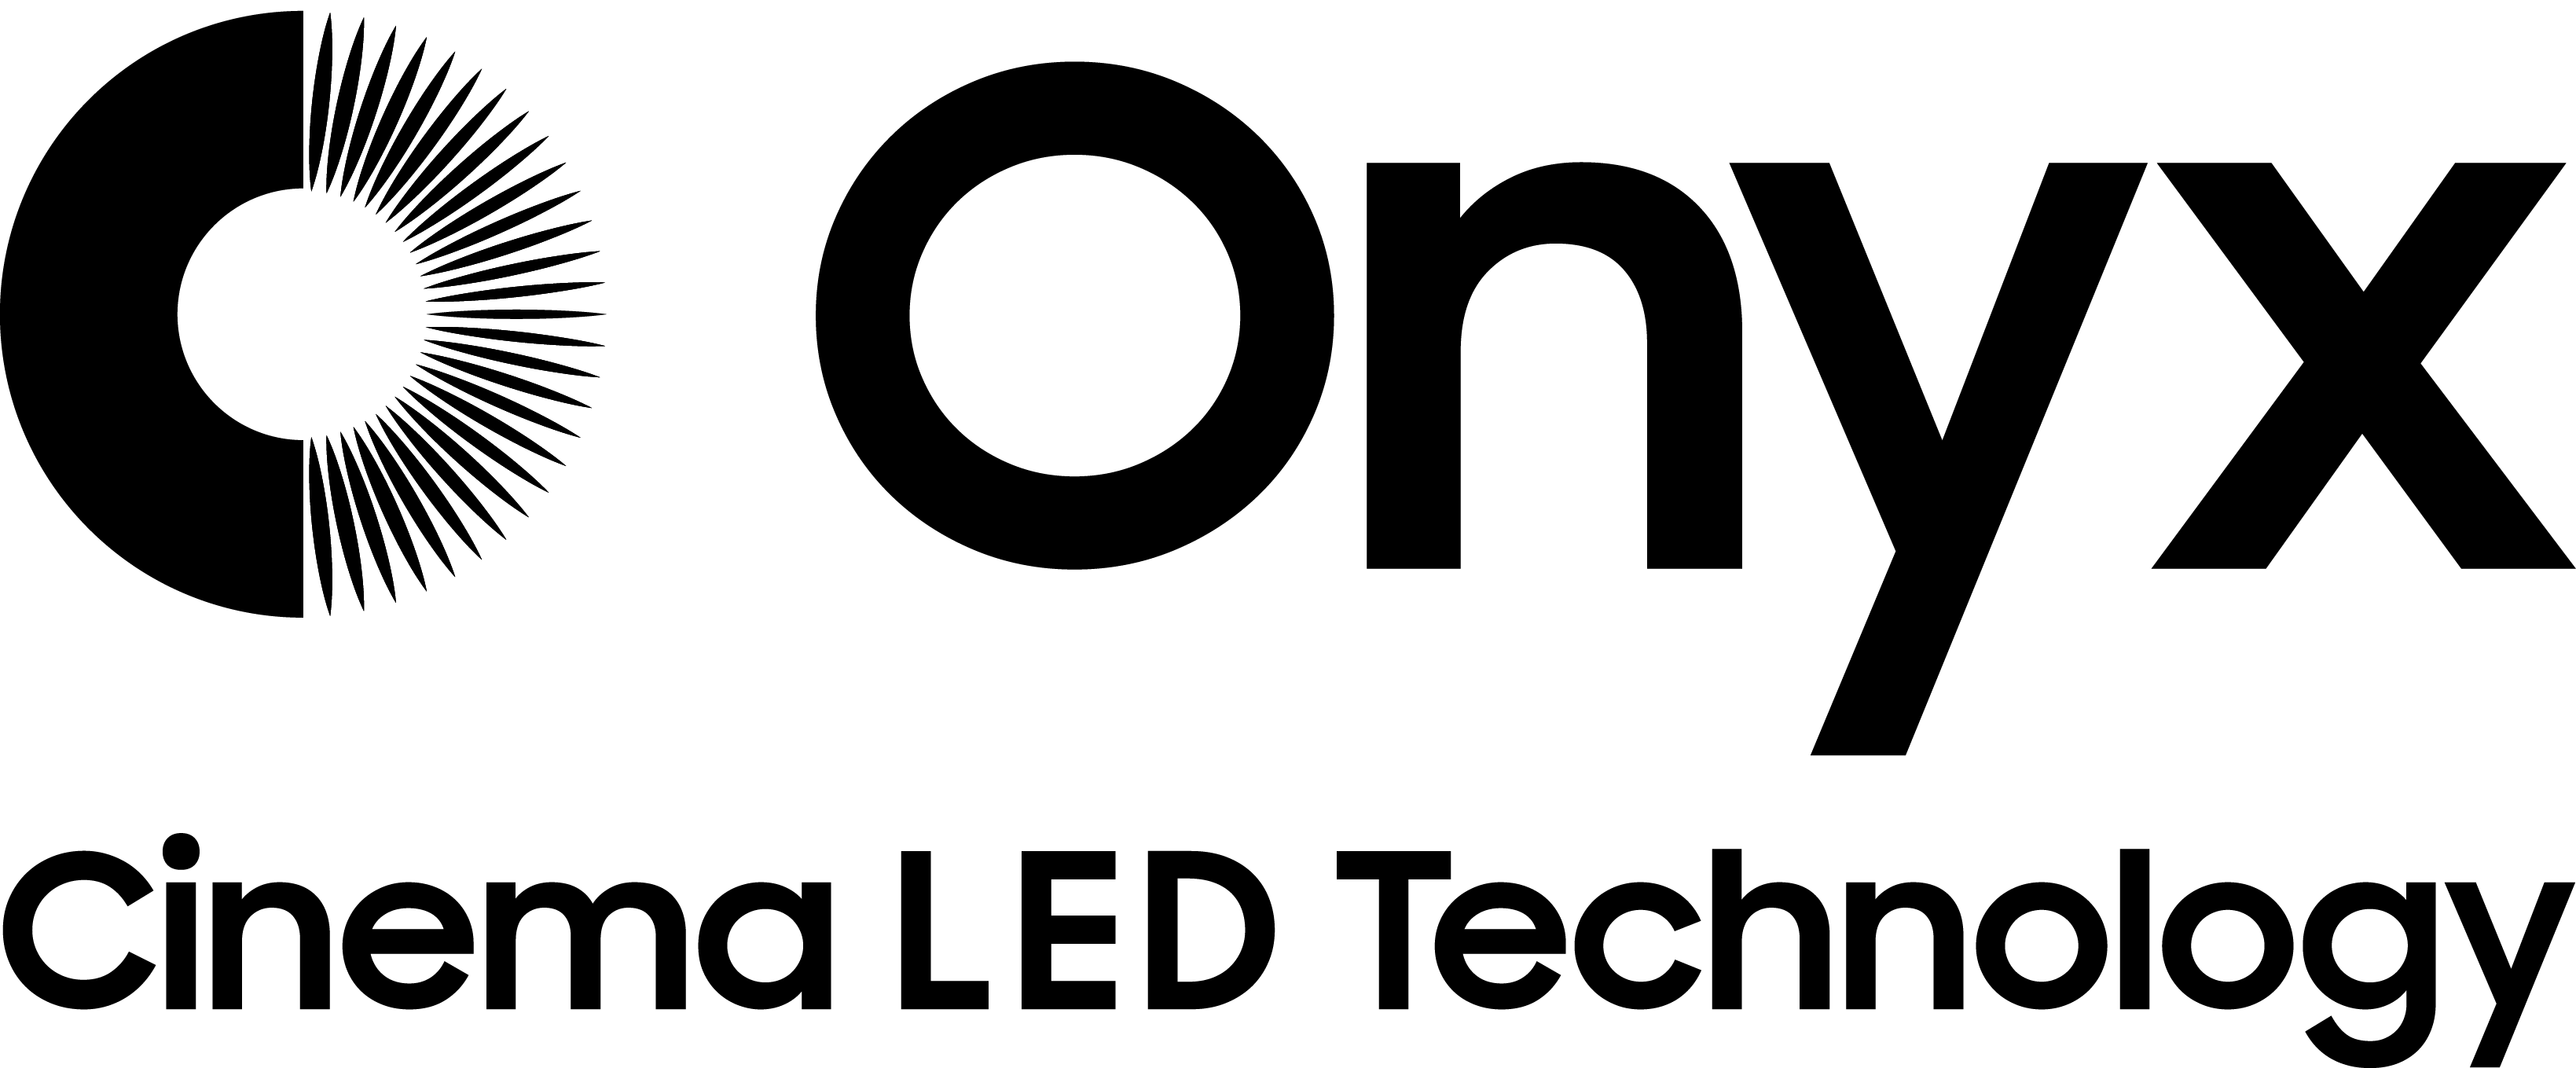 Technologie Onyx Cinema LED